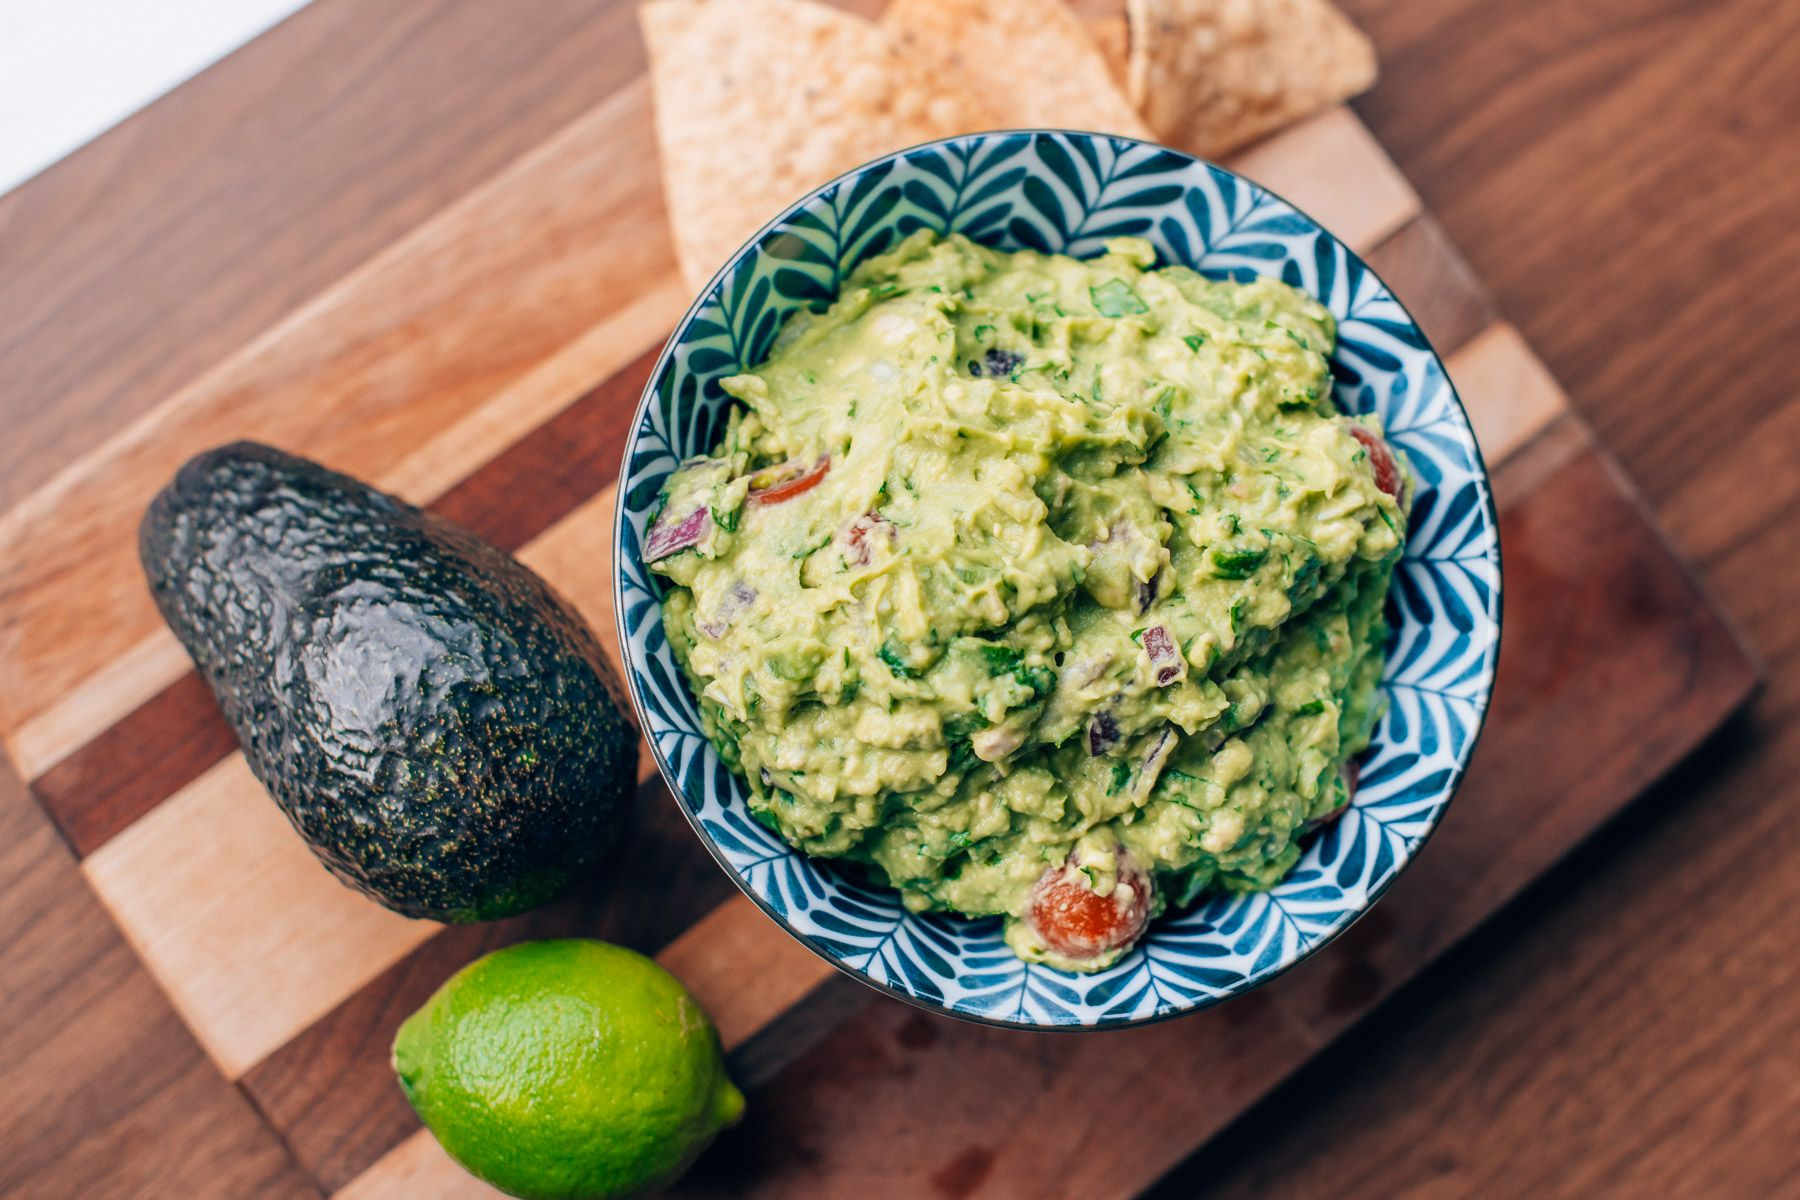 Wanderlust Cooking: Let's Go to Mexico!